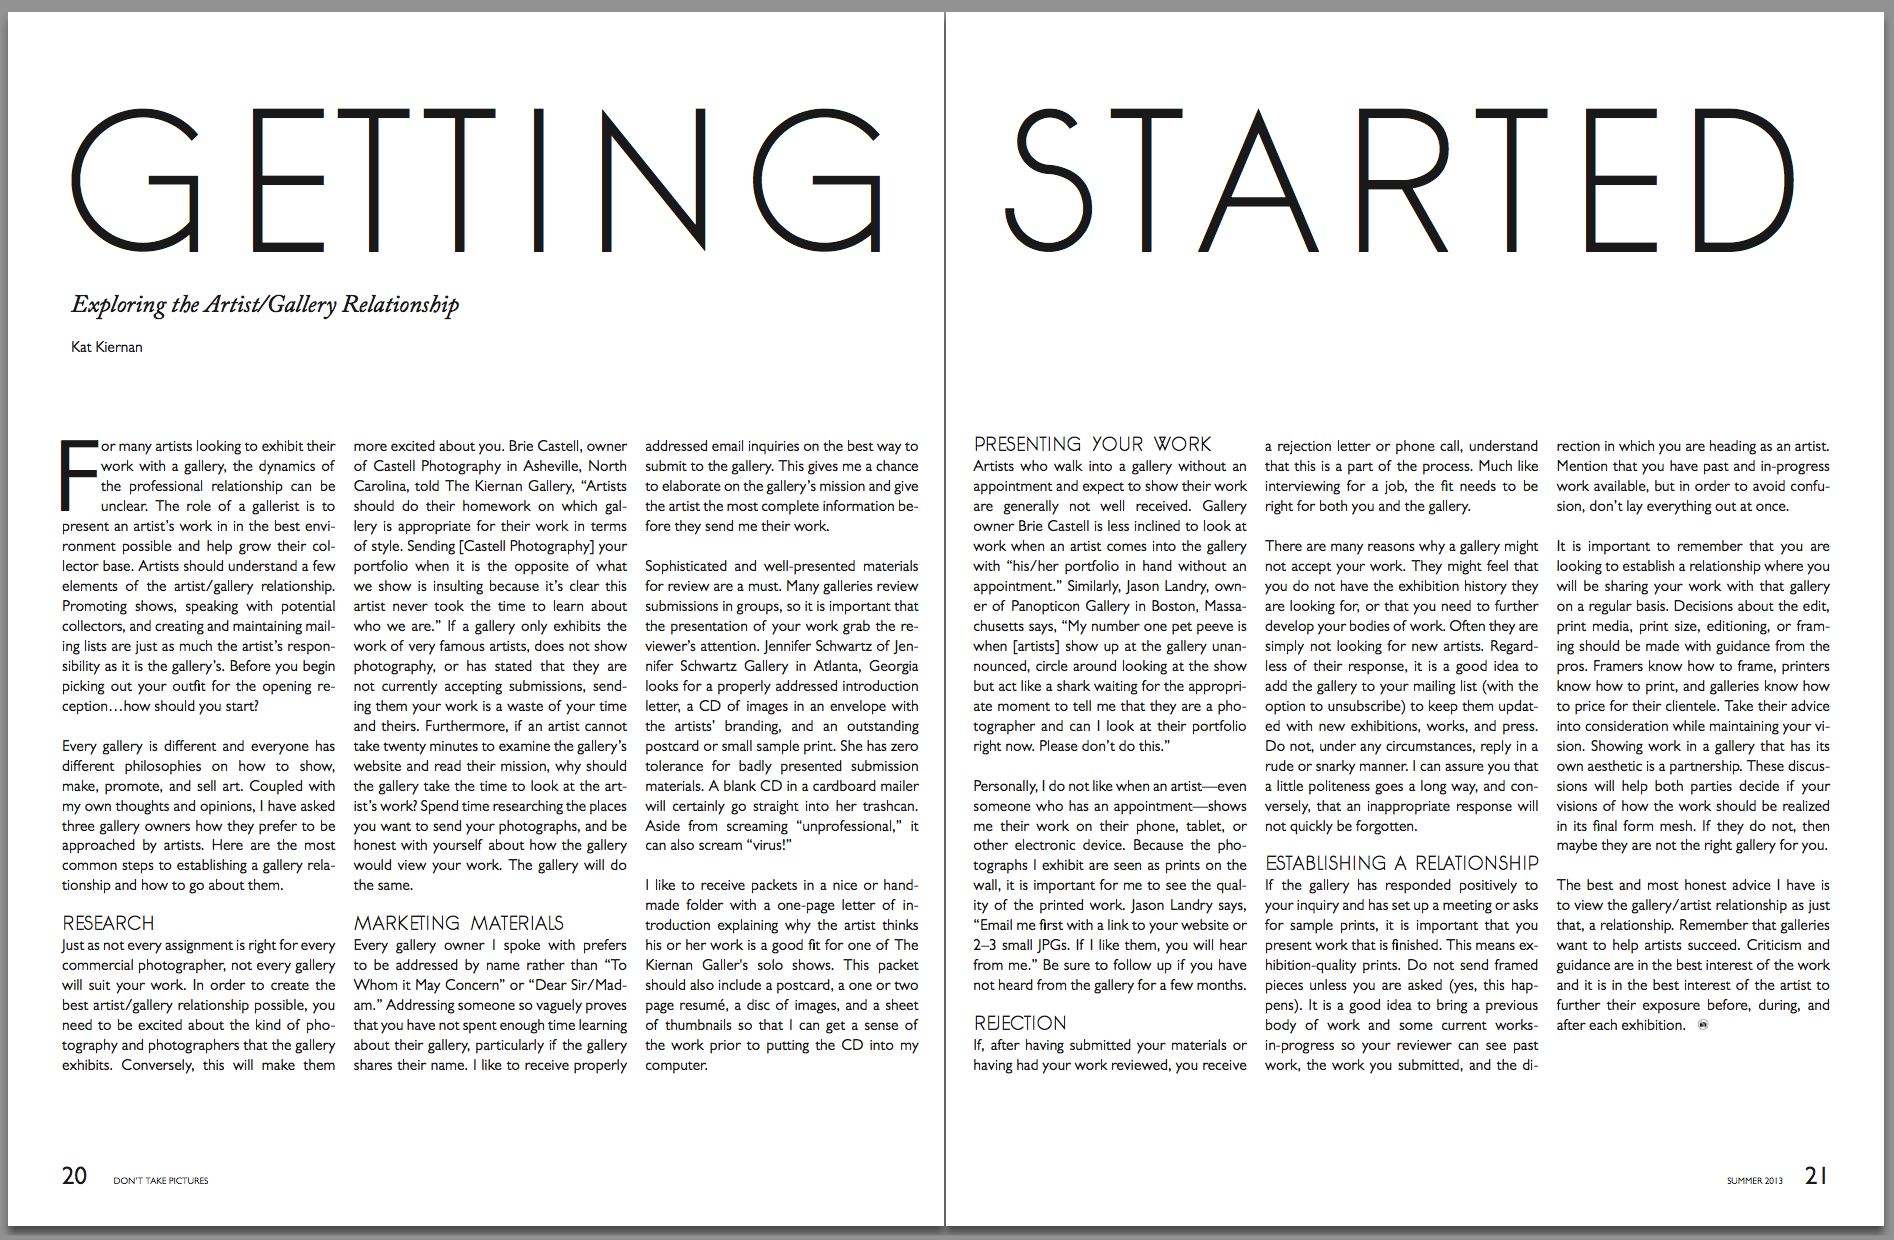 Getting Started: Exploring the Artist/Gallery Relationship  Don't Take Pictures, Issue 1 (September 2013)